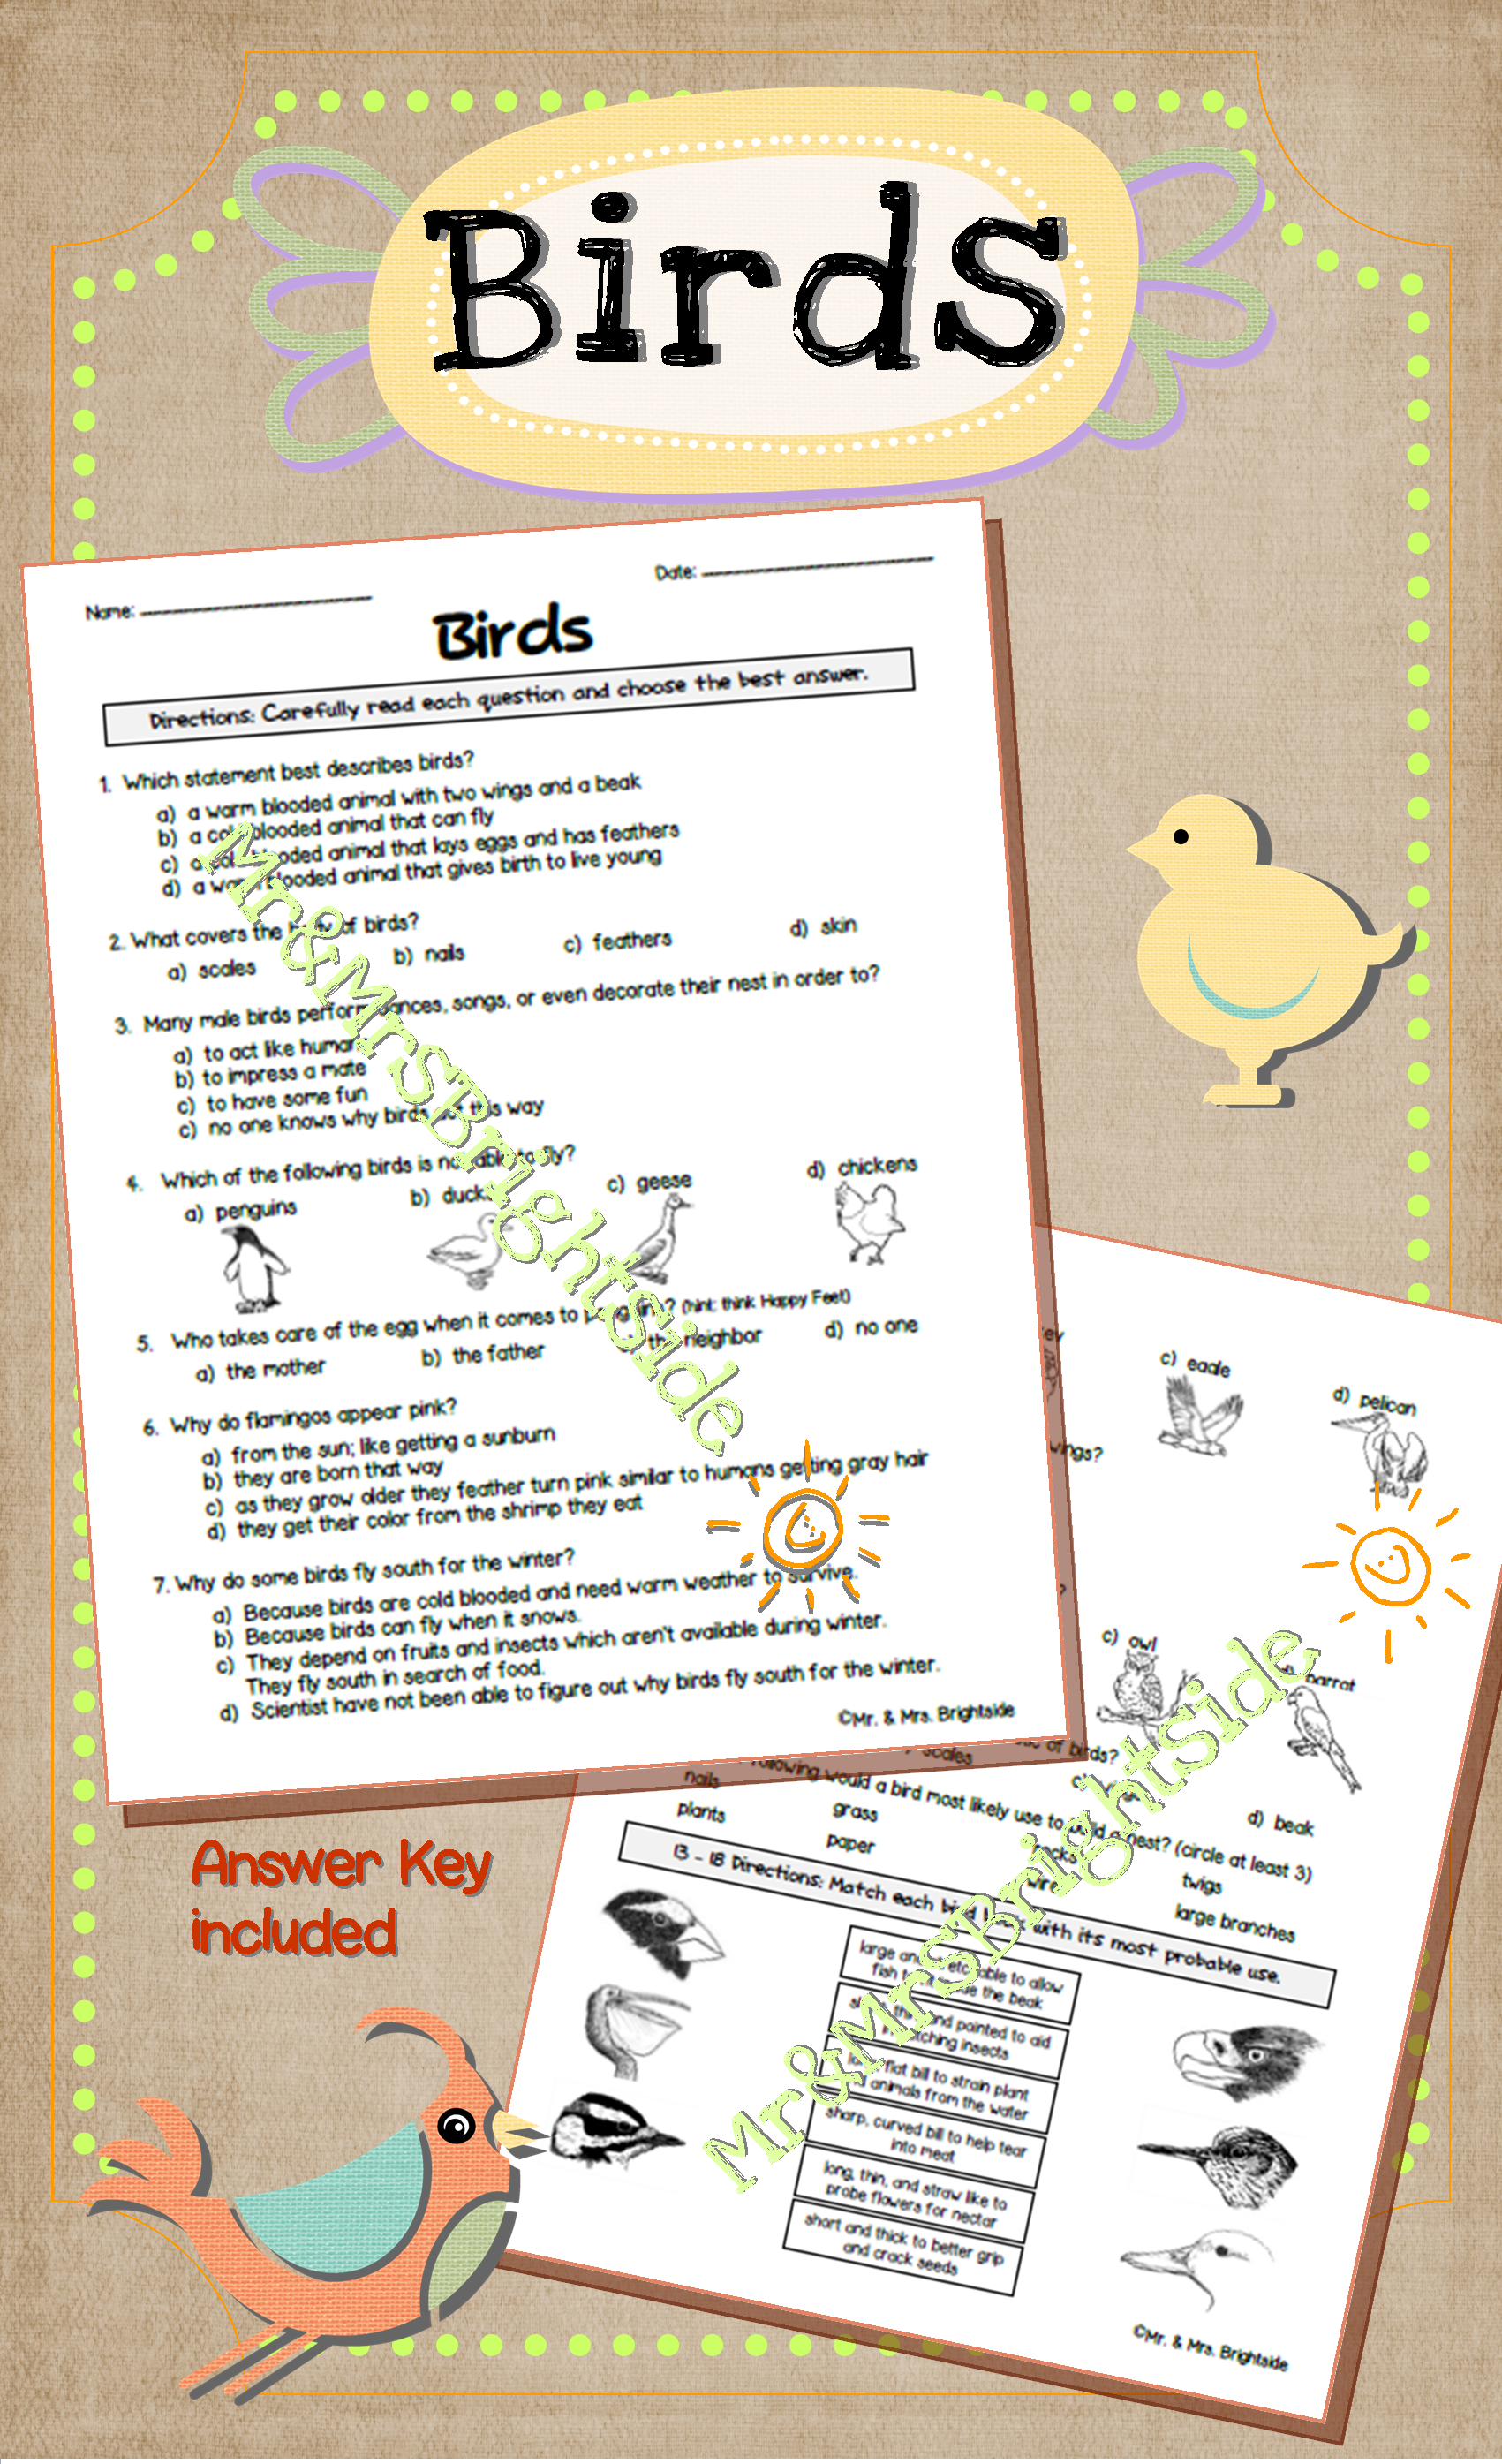 Understanding Animals: Birds | Pinterest | Worksheets, Creative ...